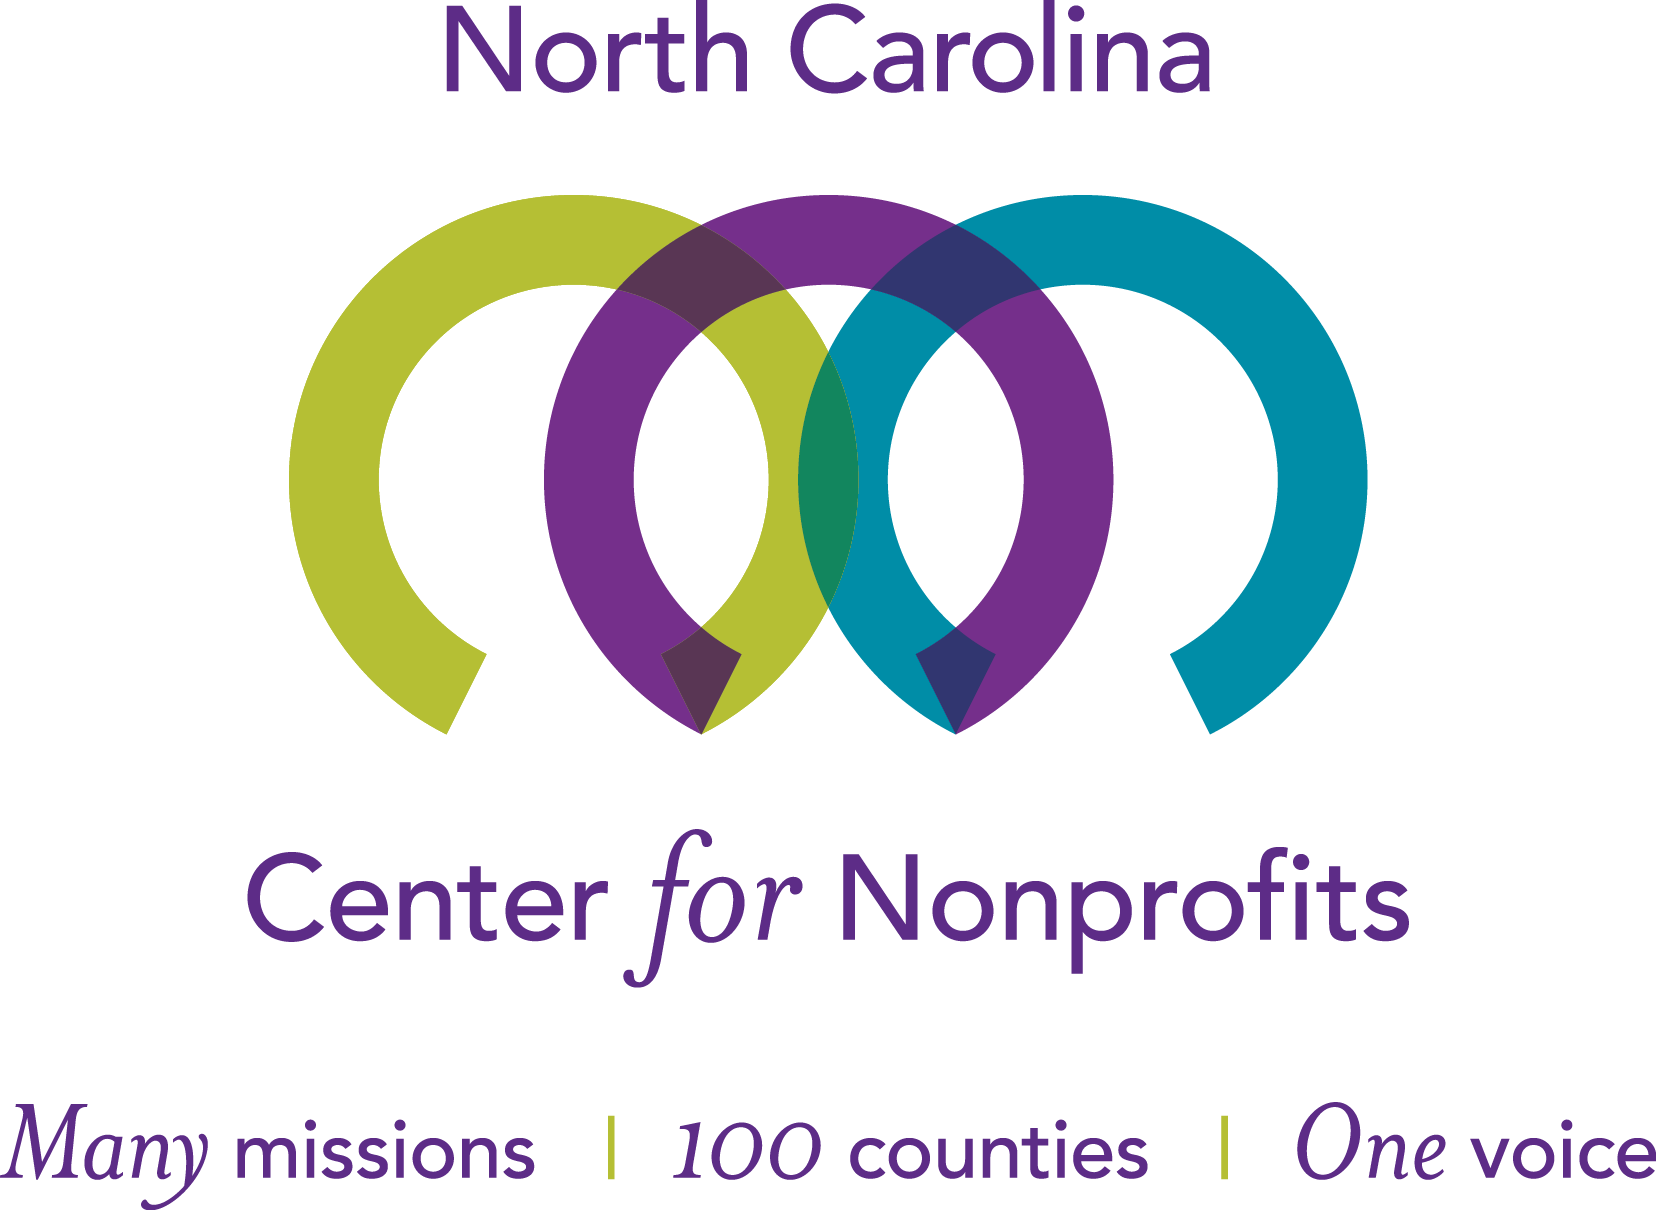 North Carolina Center for Nonprofits